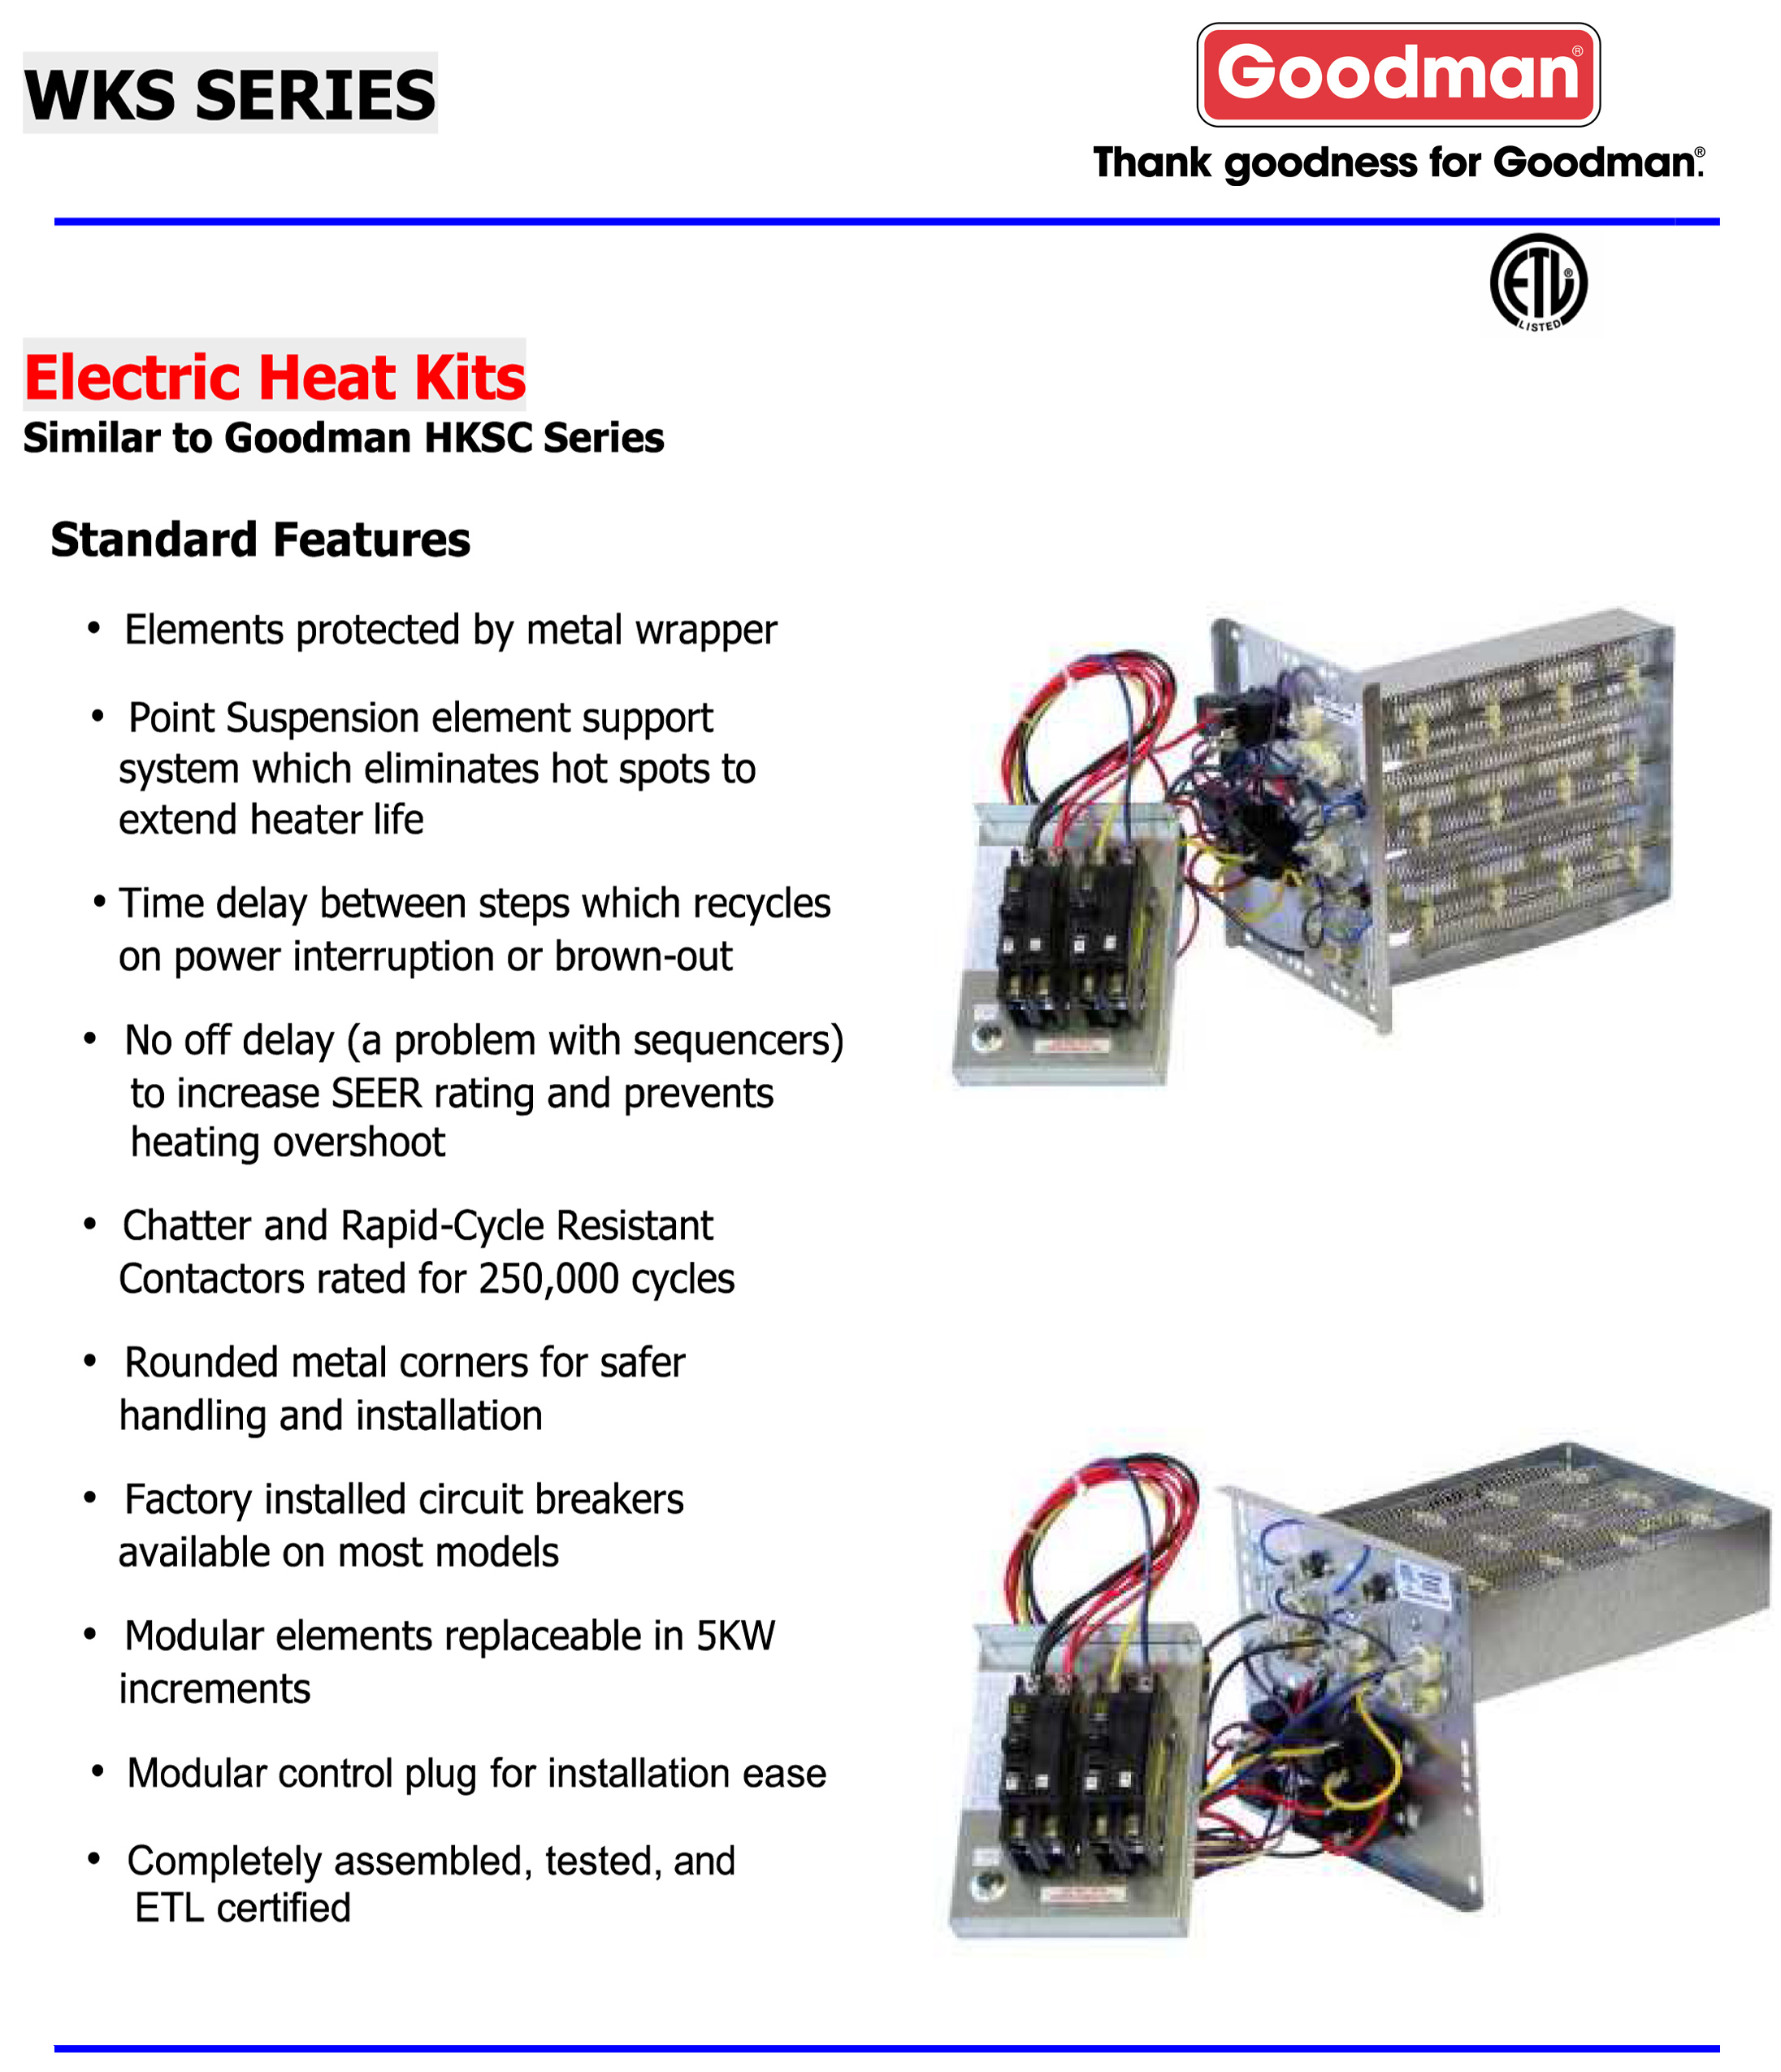 WKS BROCHURE 15 kw breakered heat strip for goodman aruf, avptc, arpt, aspt heat strip wiring diagram at bakdesigns.co